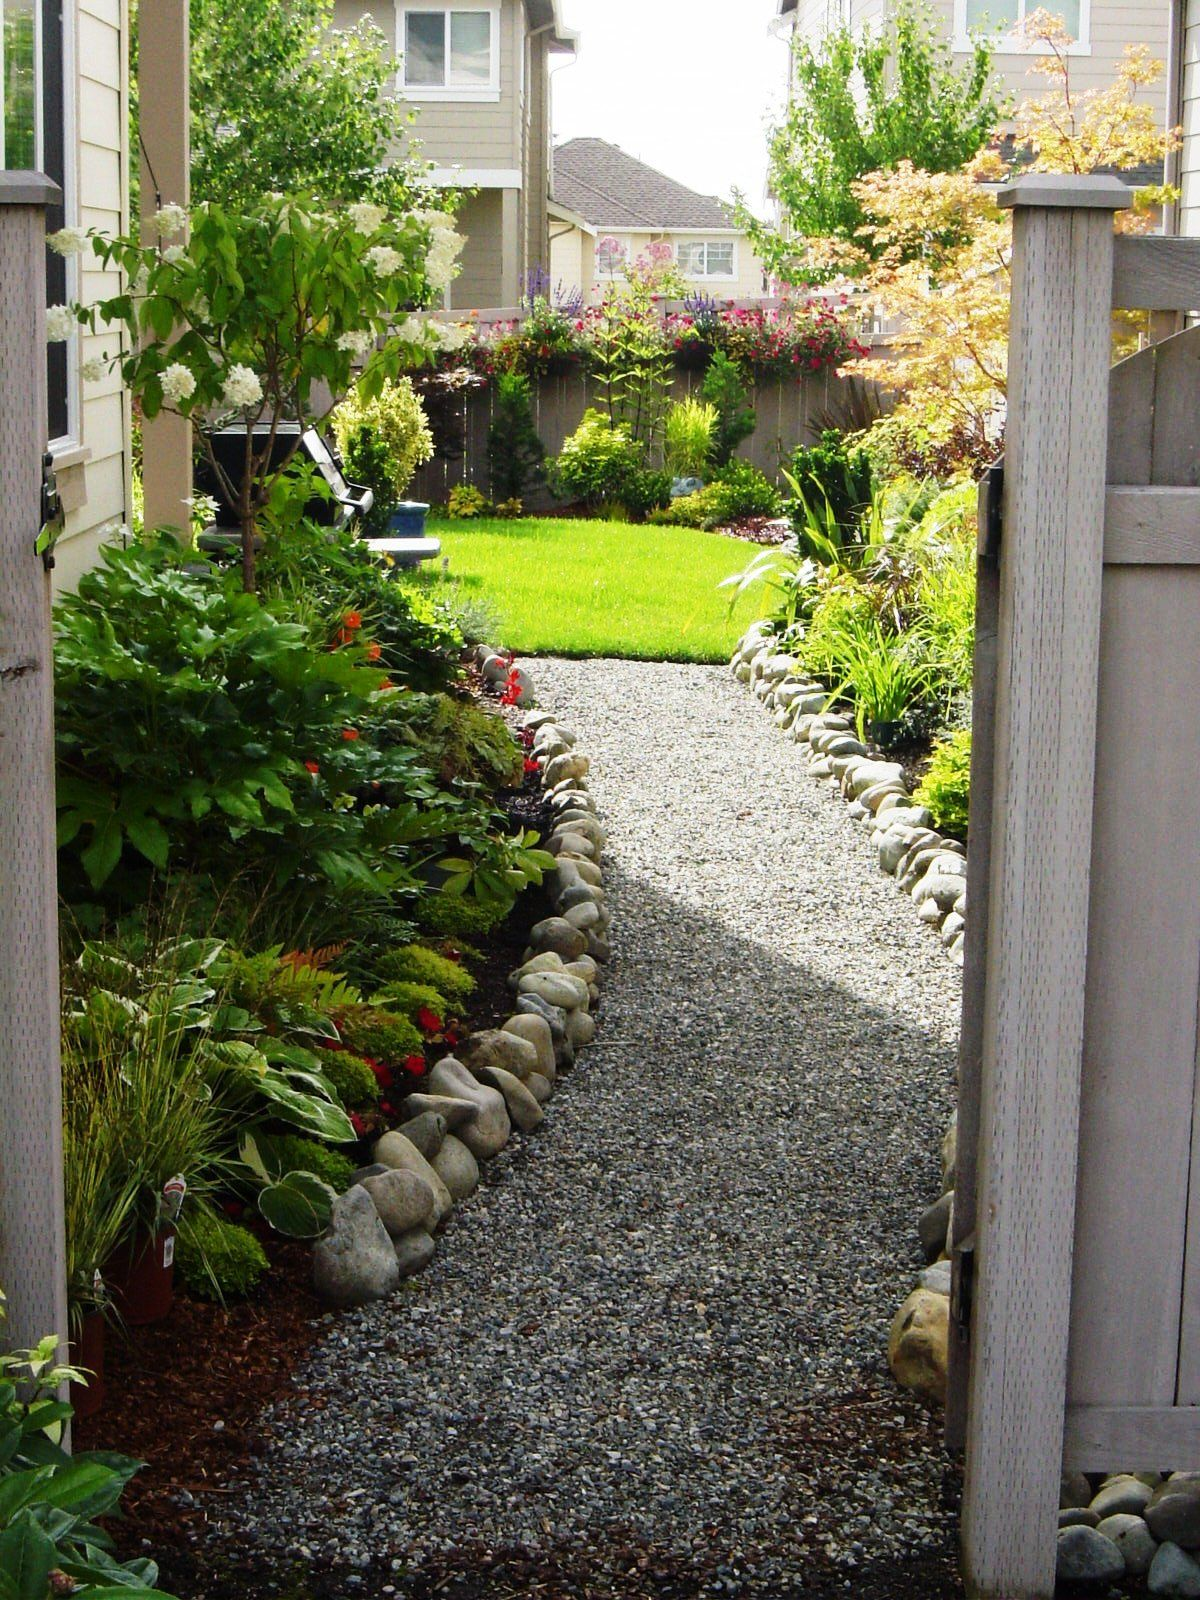 Garden And Patio Narrow Side Yard House Design With Small Vegetable Garden Spaces And W Backyard Landscaping Designs Side Yard Landscaping Pathway Landscaping